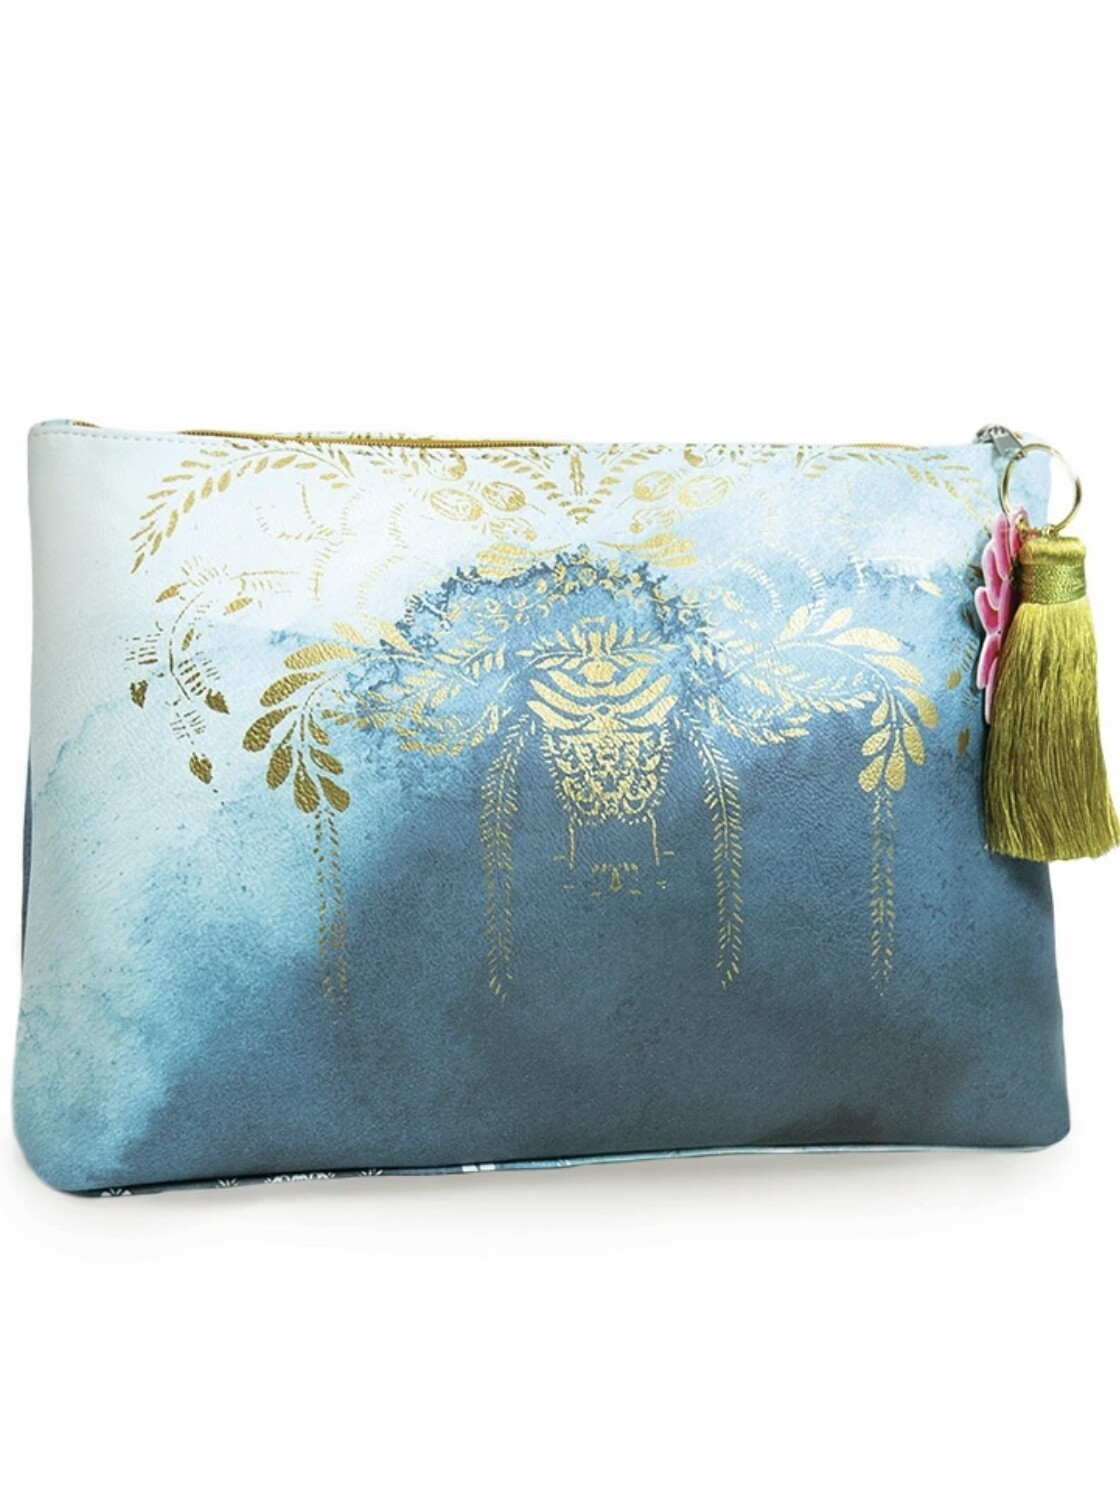 Catalina Watercolor Large Pouch - PAB12